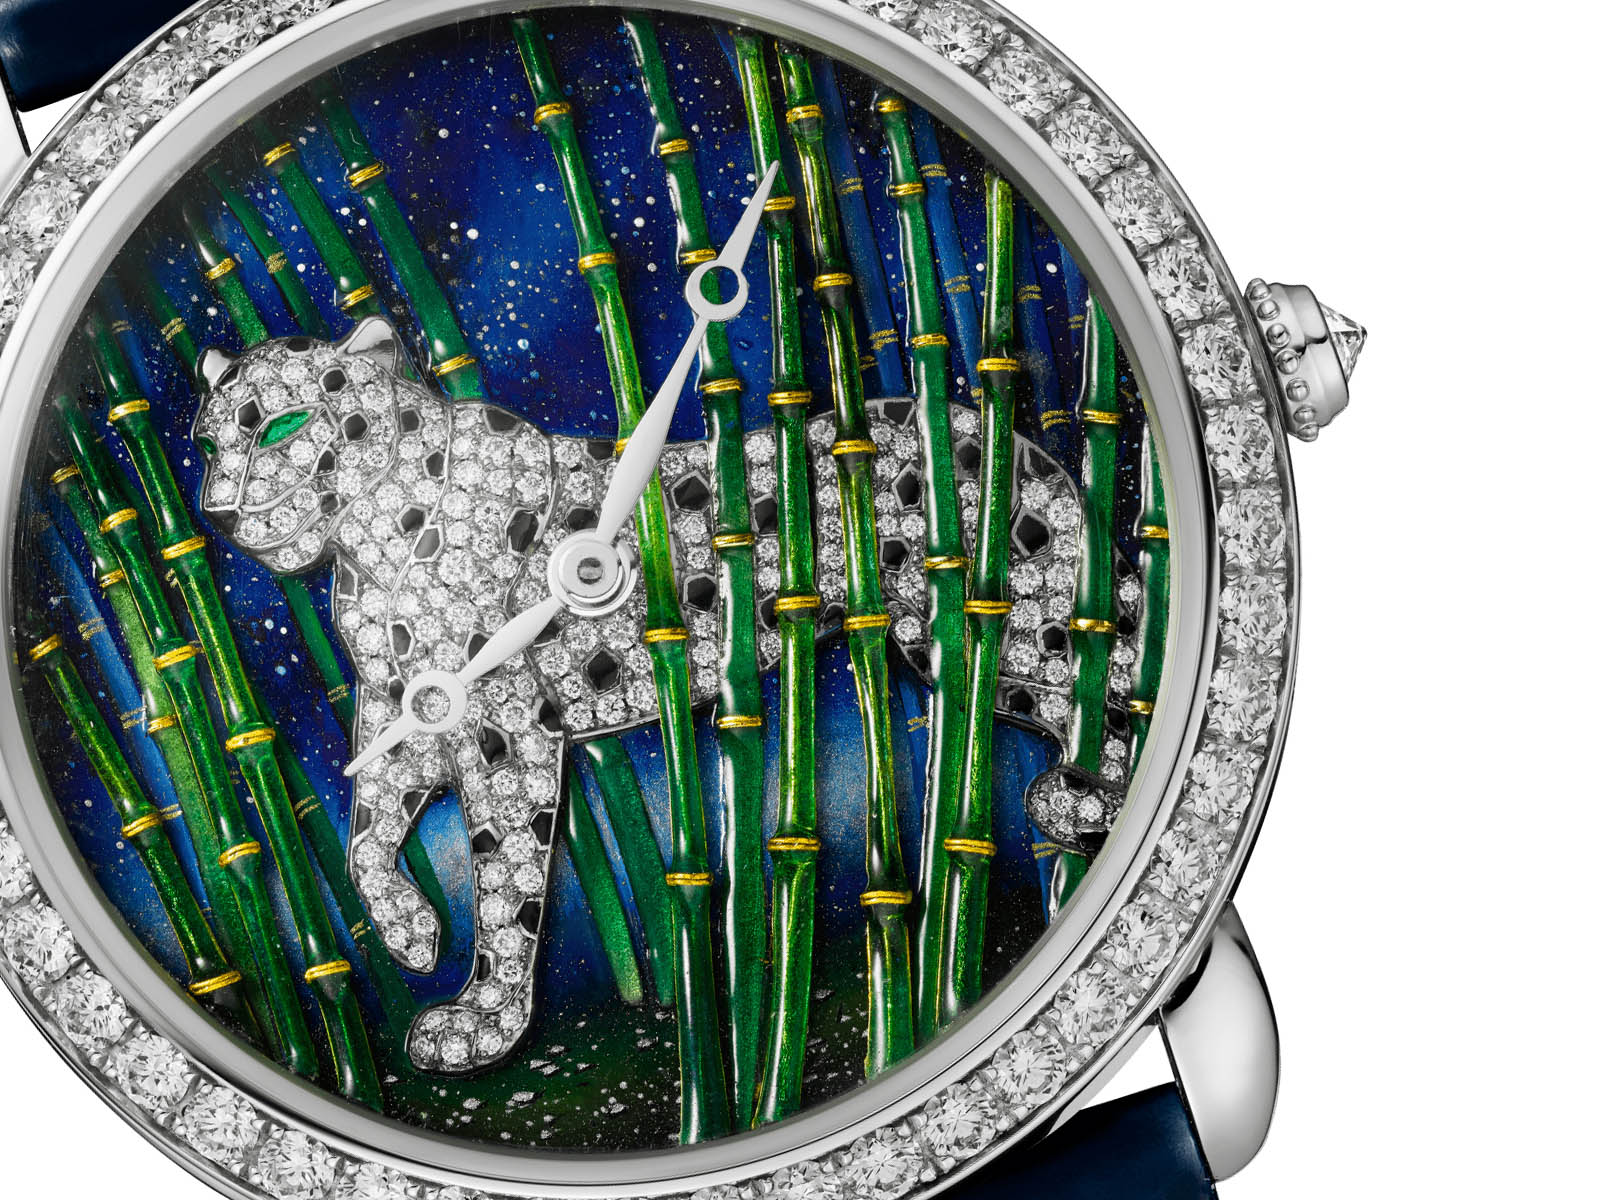 ronde-louis-cartier-enamel-filigree-watch-metiers-d-art-watches-wonders-2020-3.jpg